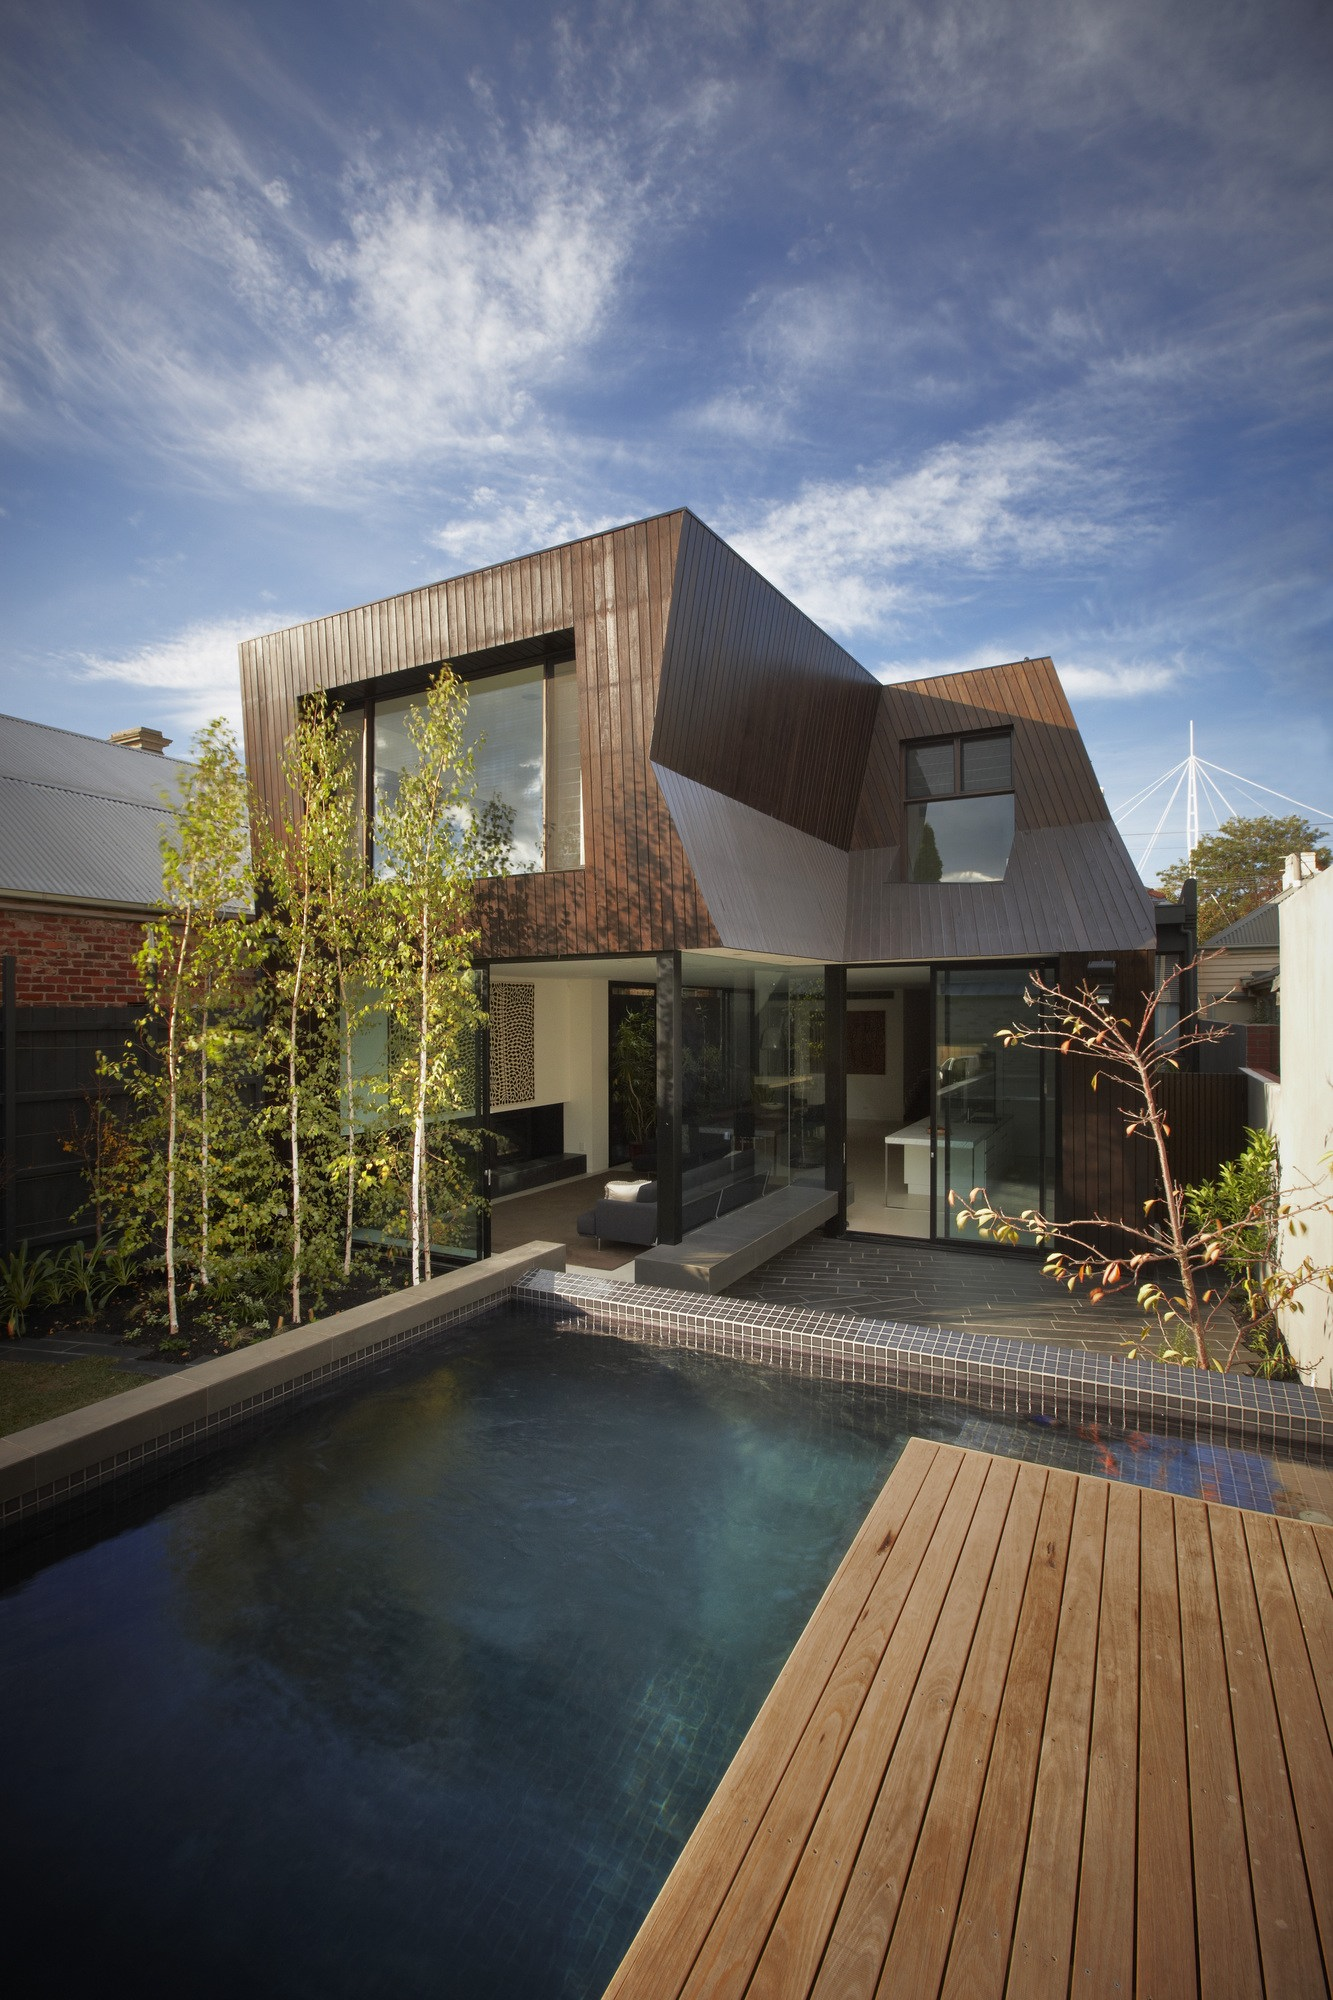 design building business architecture modern house pattern home symbol construction